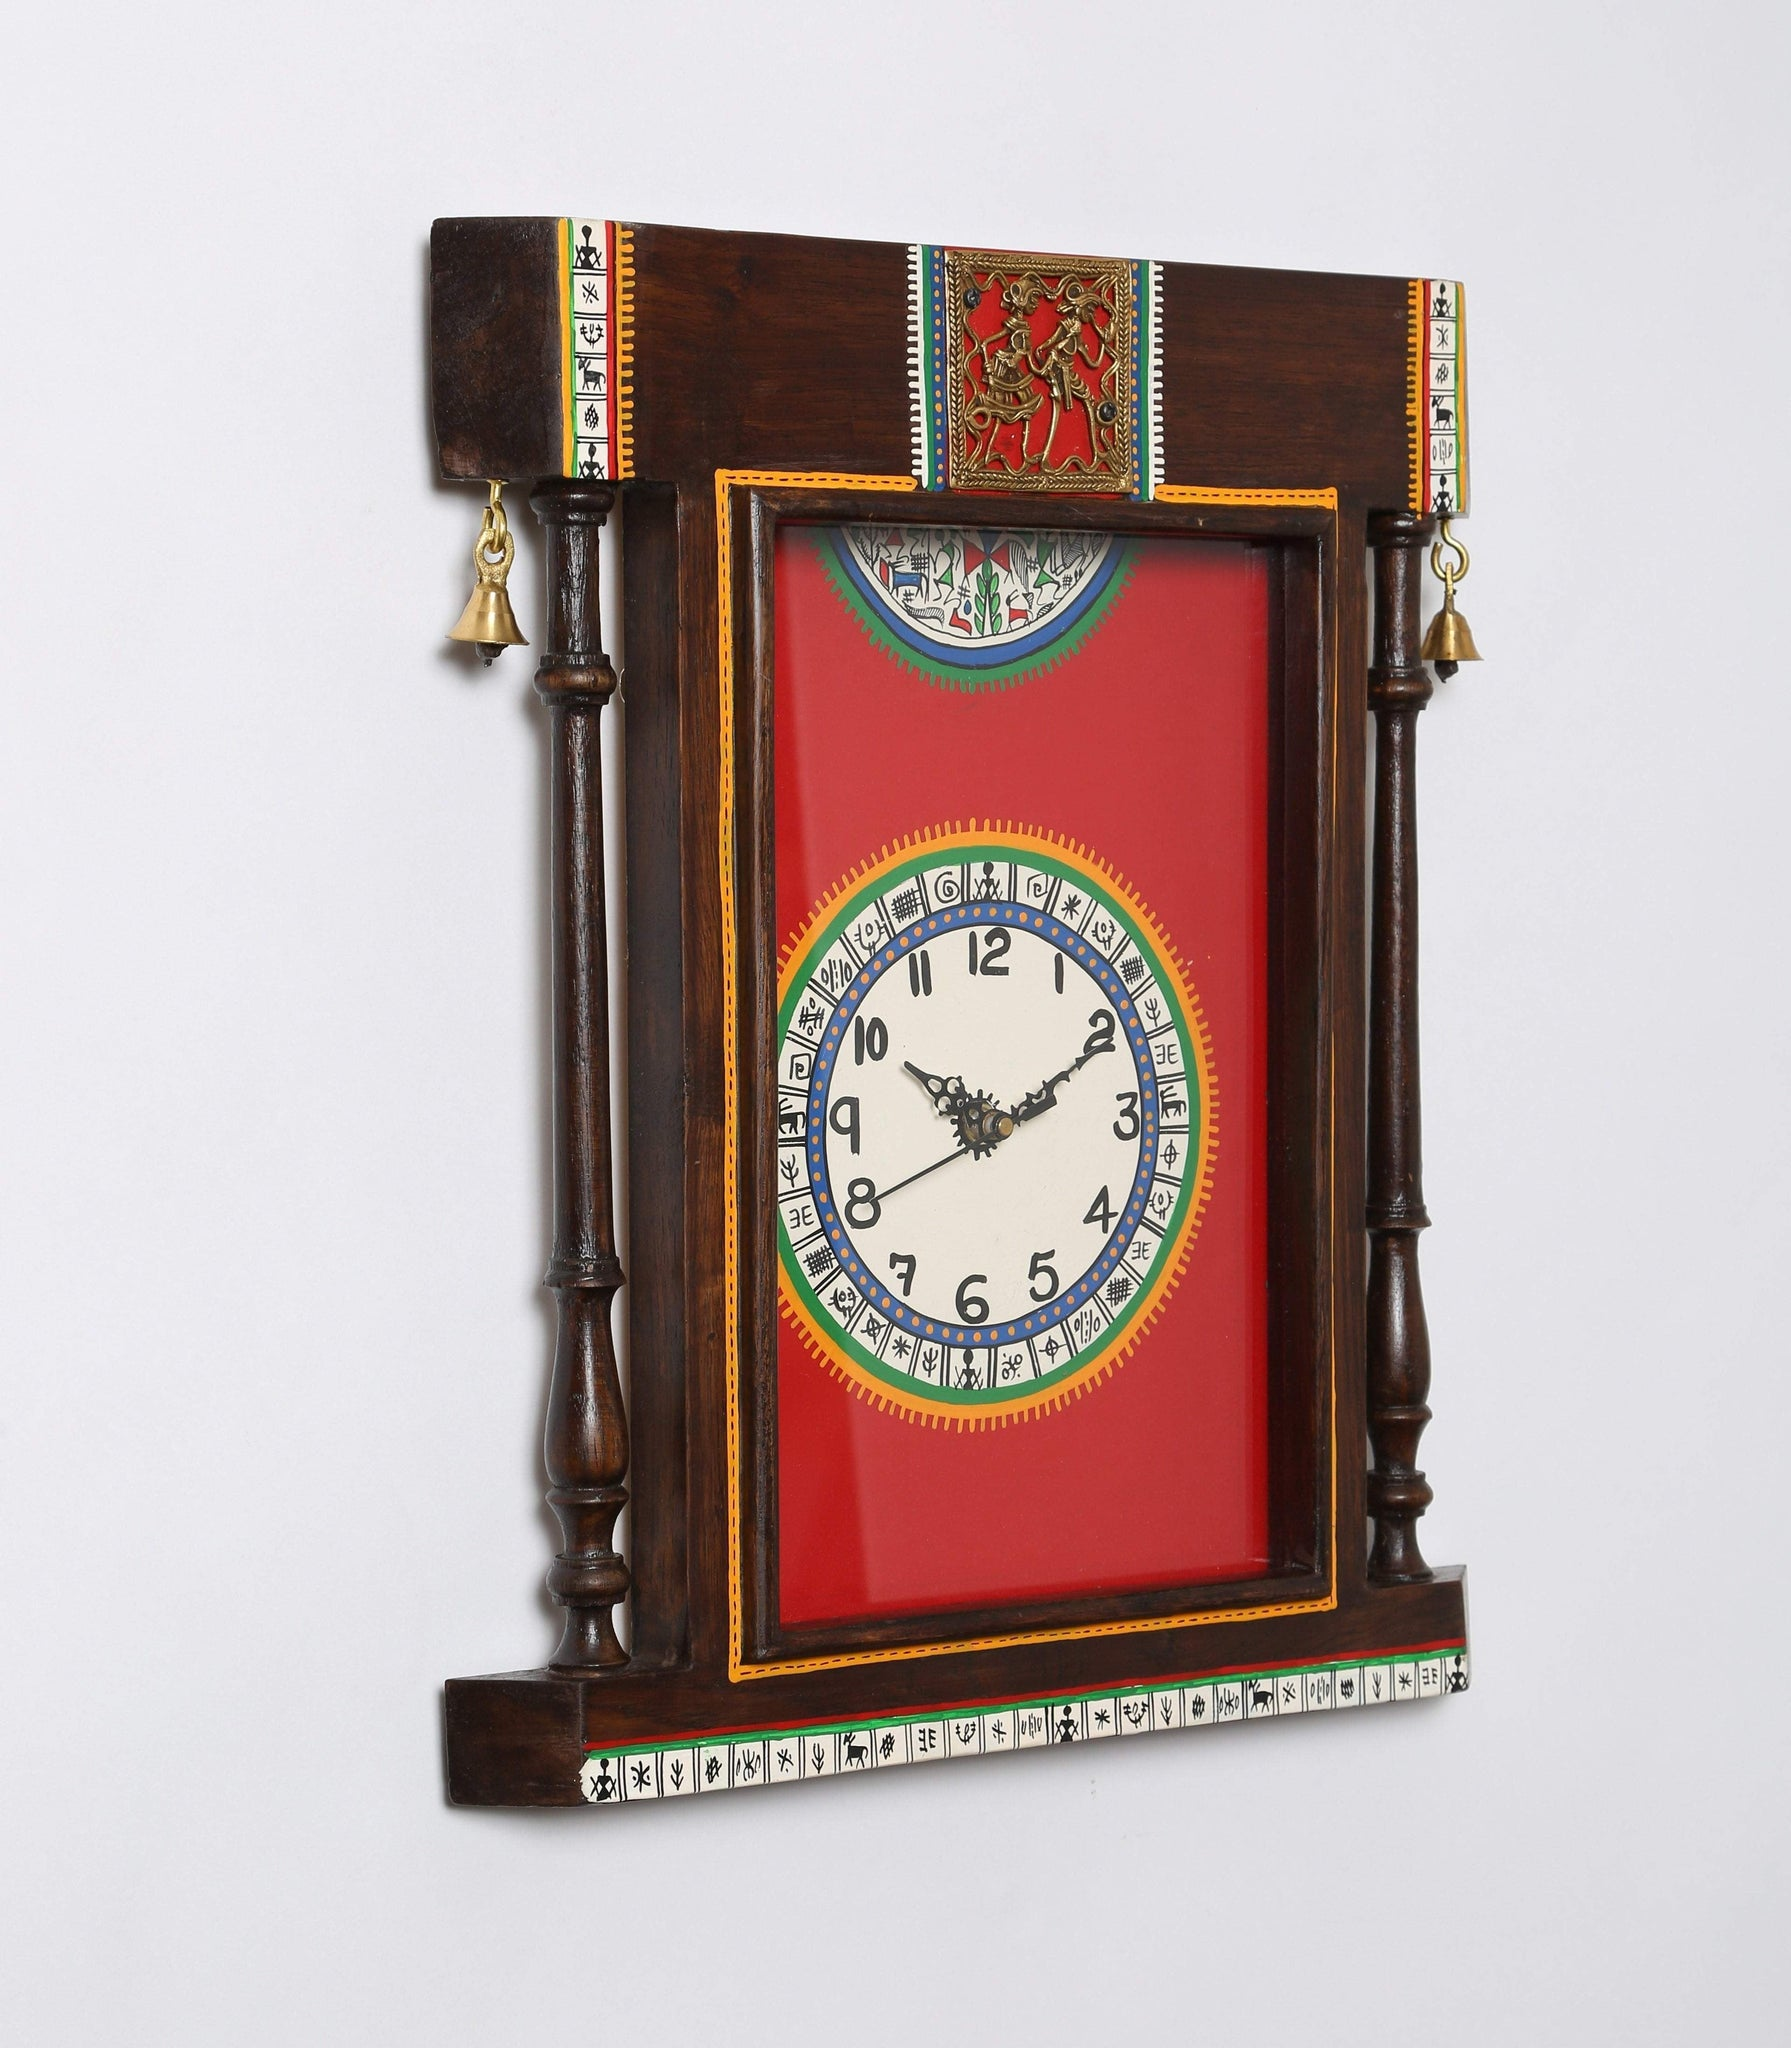 Wooden Handcrafted Antique Wall Clock With Warli Art